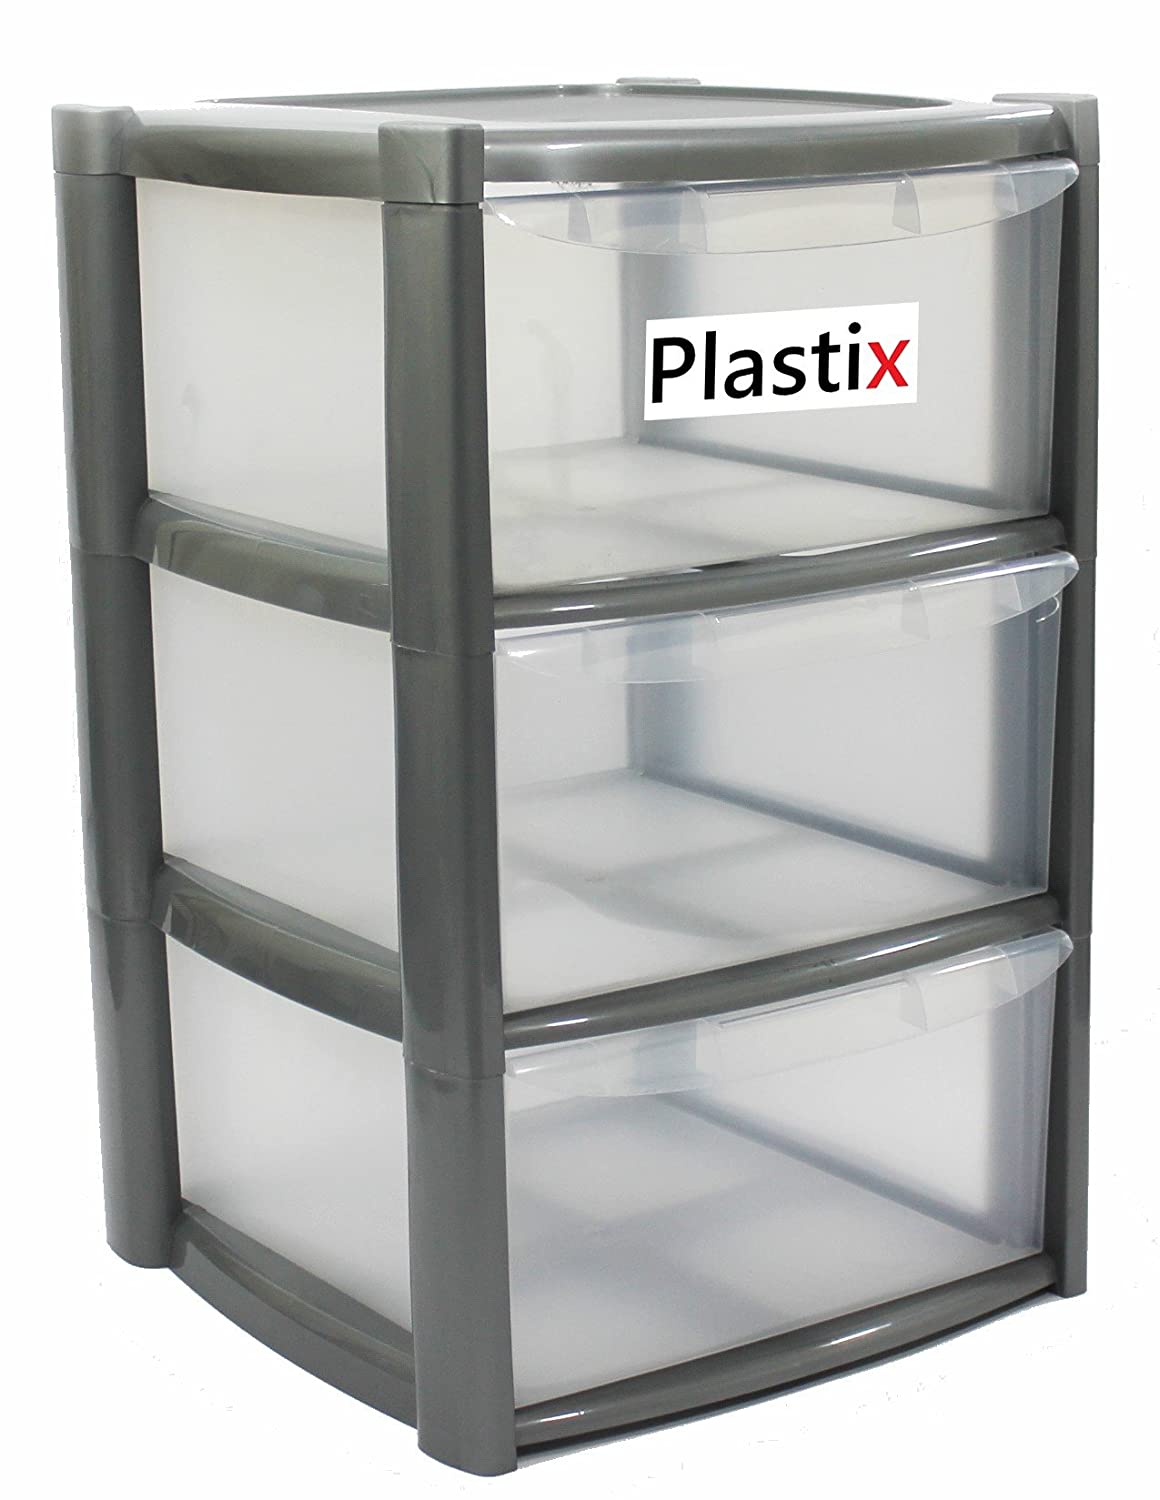 Large 3 Tier Drawer Plastic Draw Storage Trolley Tower Unit Home Office (Silver) Plastix